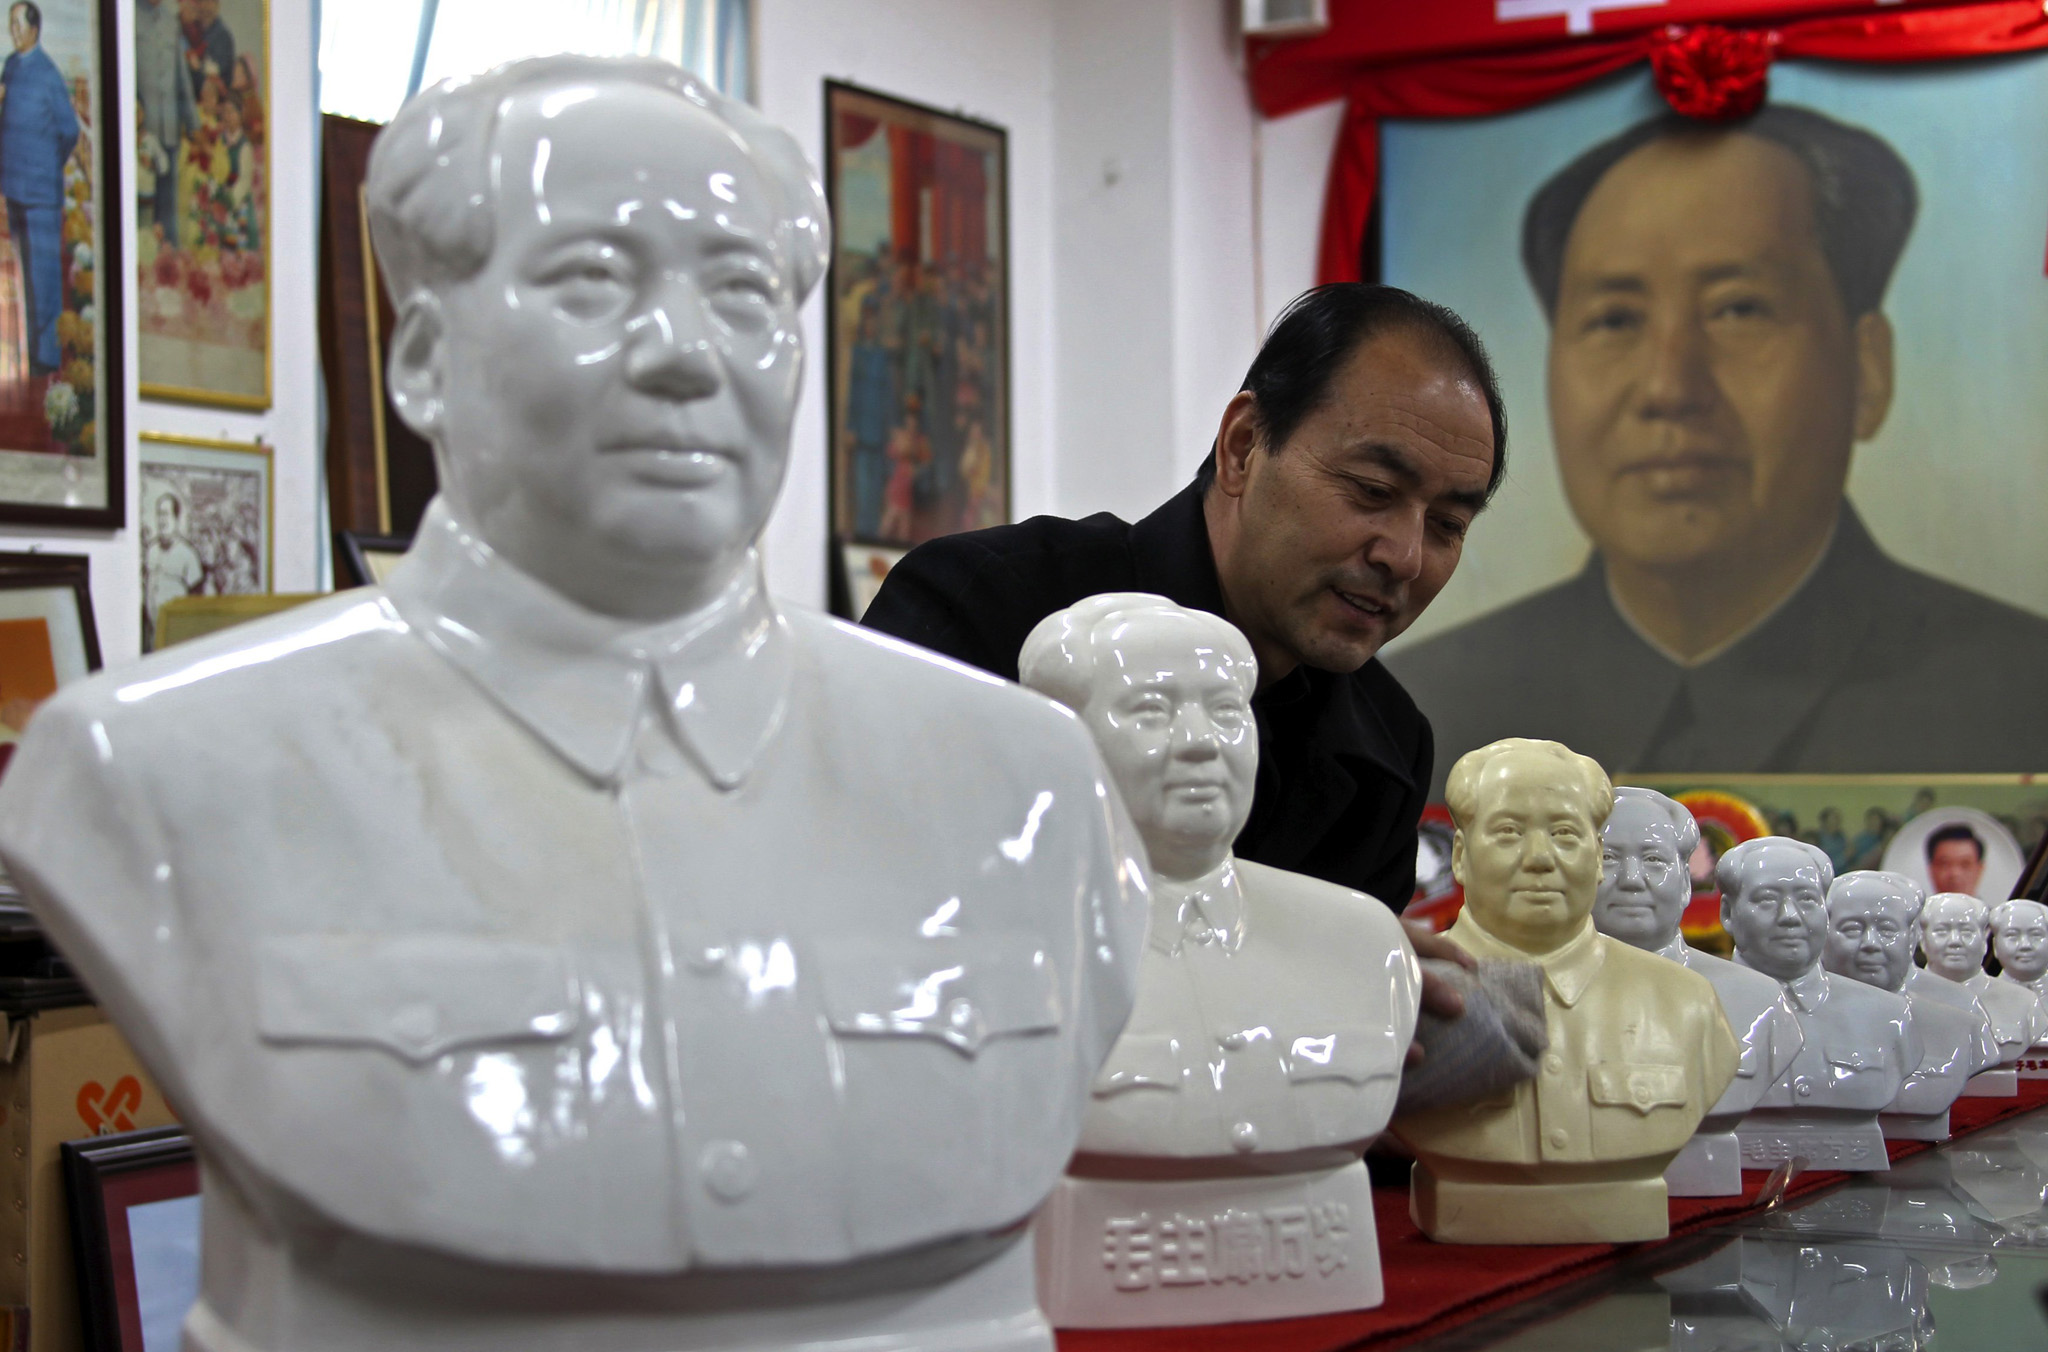 Dang Guihong, a judicial official, wipes statues of China's late Chairman Mao Zedong at an exhibition room in Yuncheng, Shanxi province. Dang is going to exhibit around 5000 pieces of his revolution collection, including badges, statues and portraits ahead of the 120th anniversary of Mao's birth.